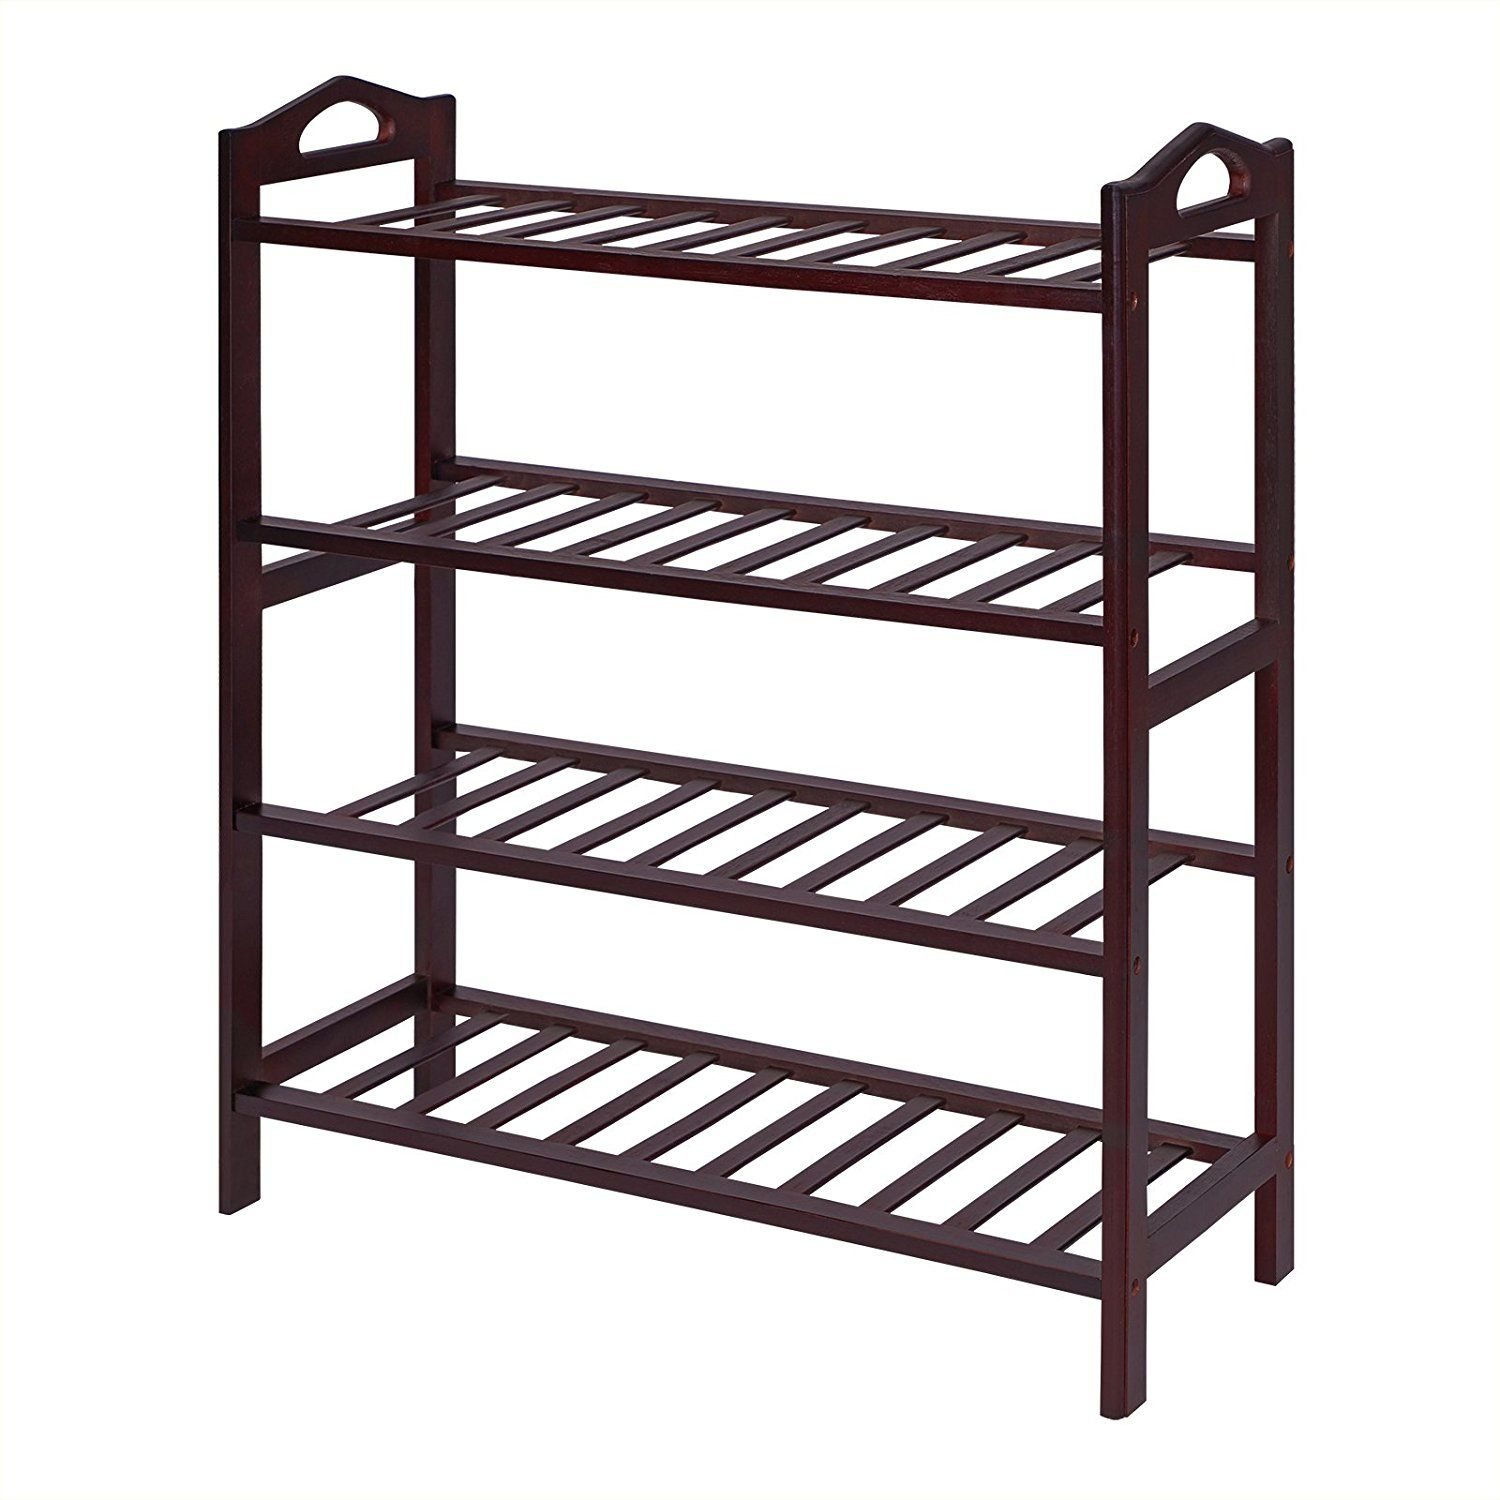 100 Natural Bamboo Environment Friendly And Sturdy 4 Tiers Bamboo Rack Storage Shelf For Shoes Bags Plan Shoe Rack Entryway Shoe Shelf Wooden Shoe Racks